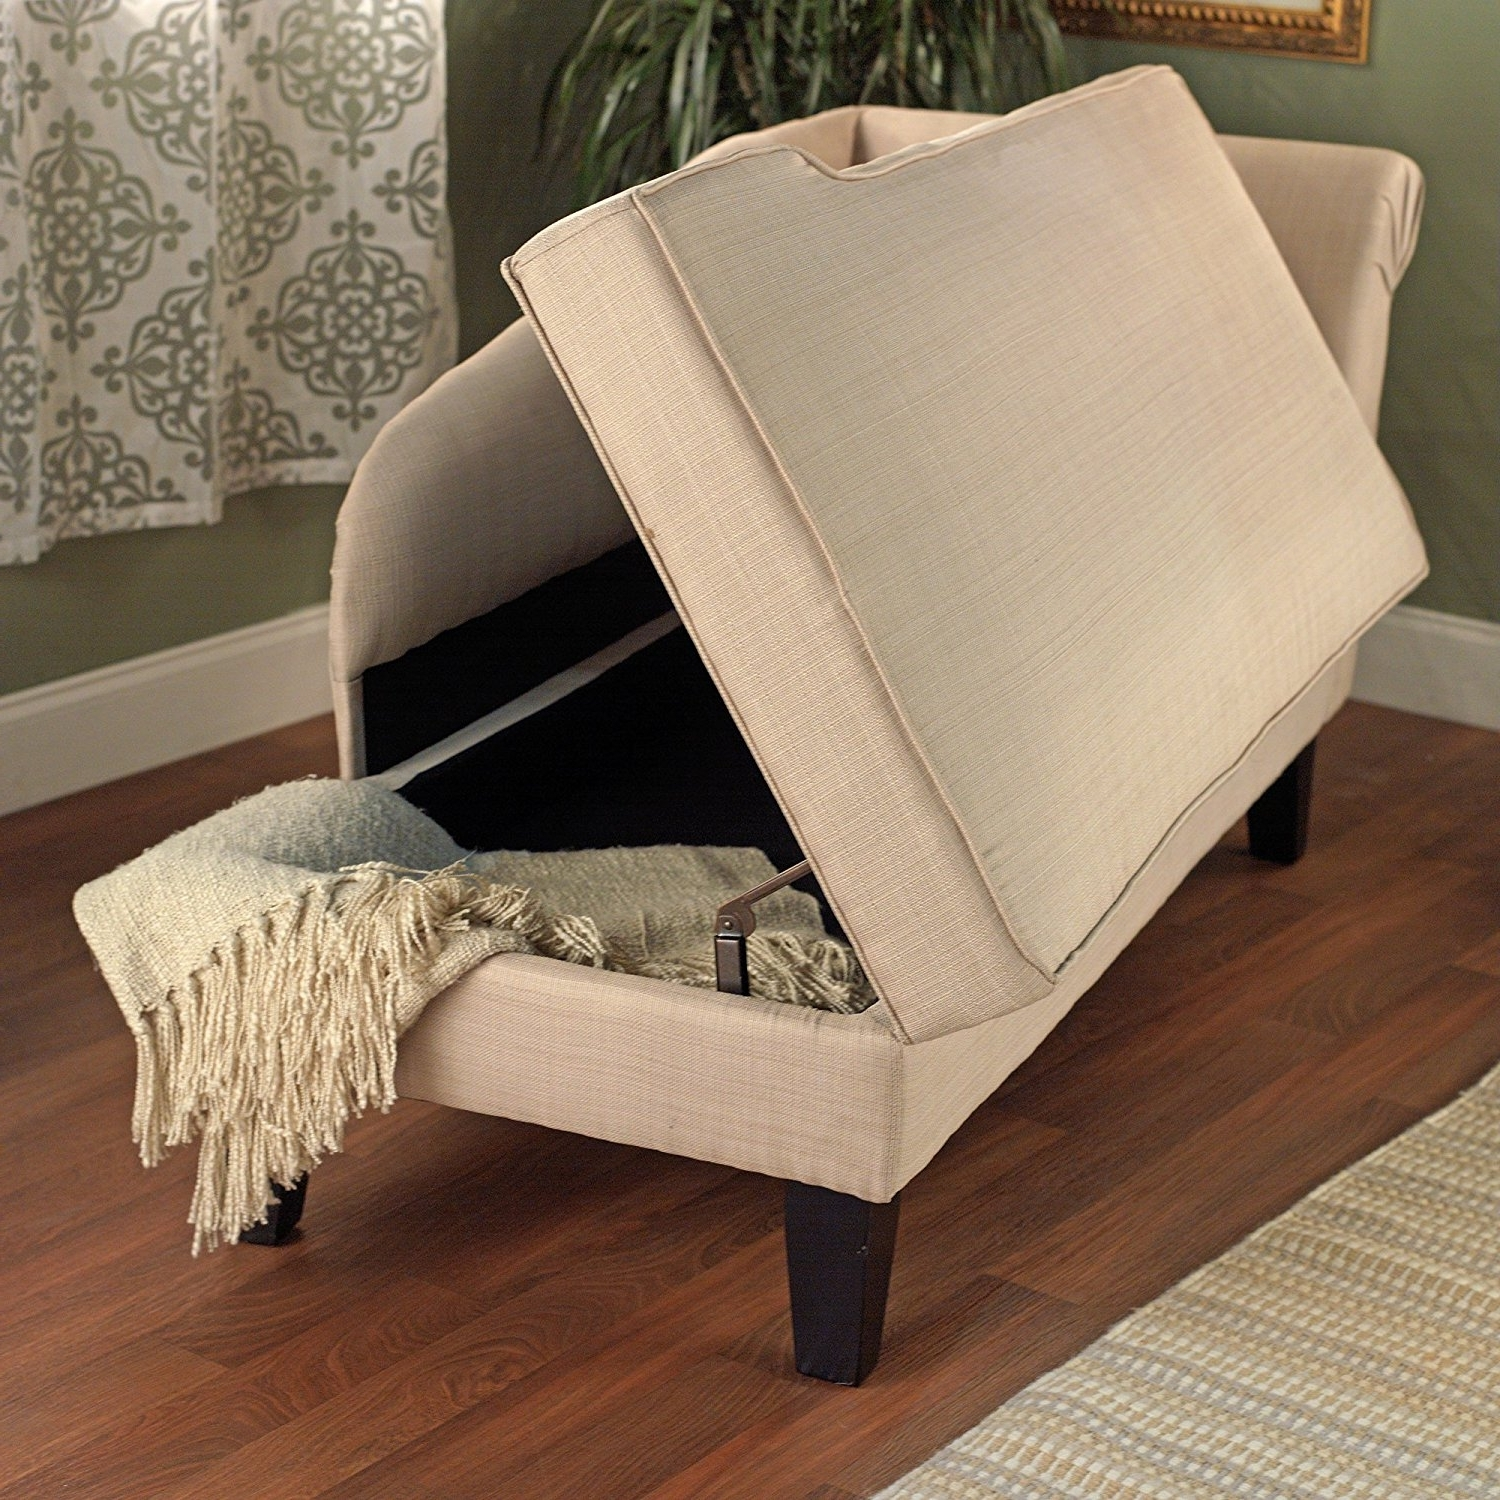 Chaise Lounge Chairs With Storage For Well Known Amazon: Tms Leena Storage Chaise, Beige: Kitchen & Dining (View 3 of 15)